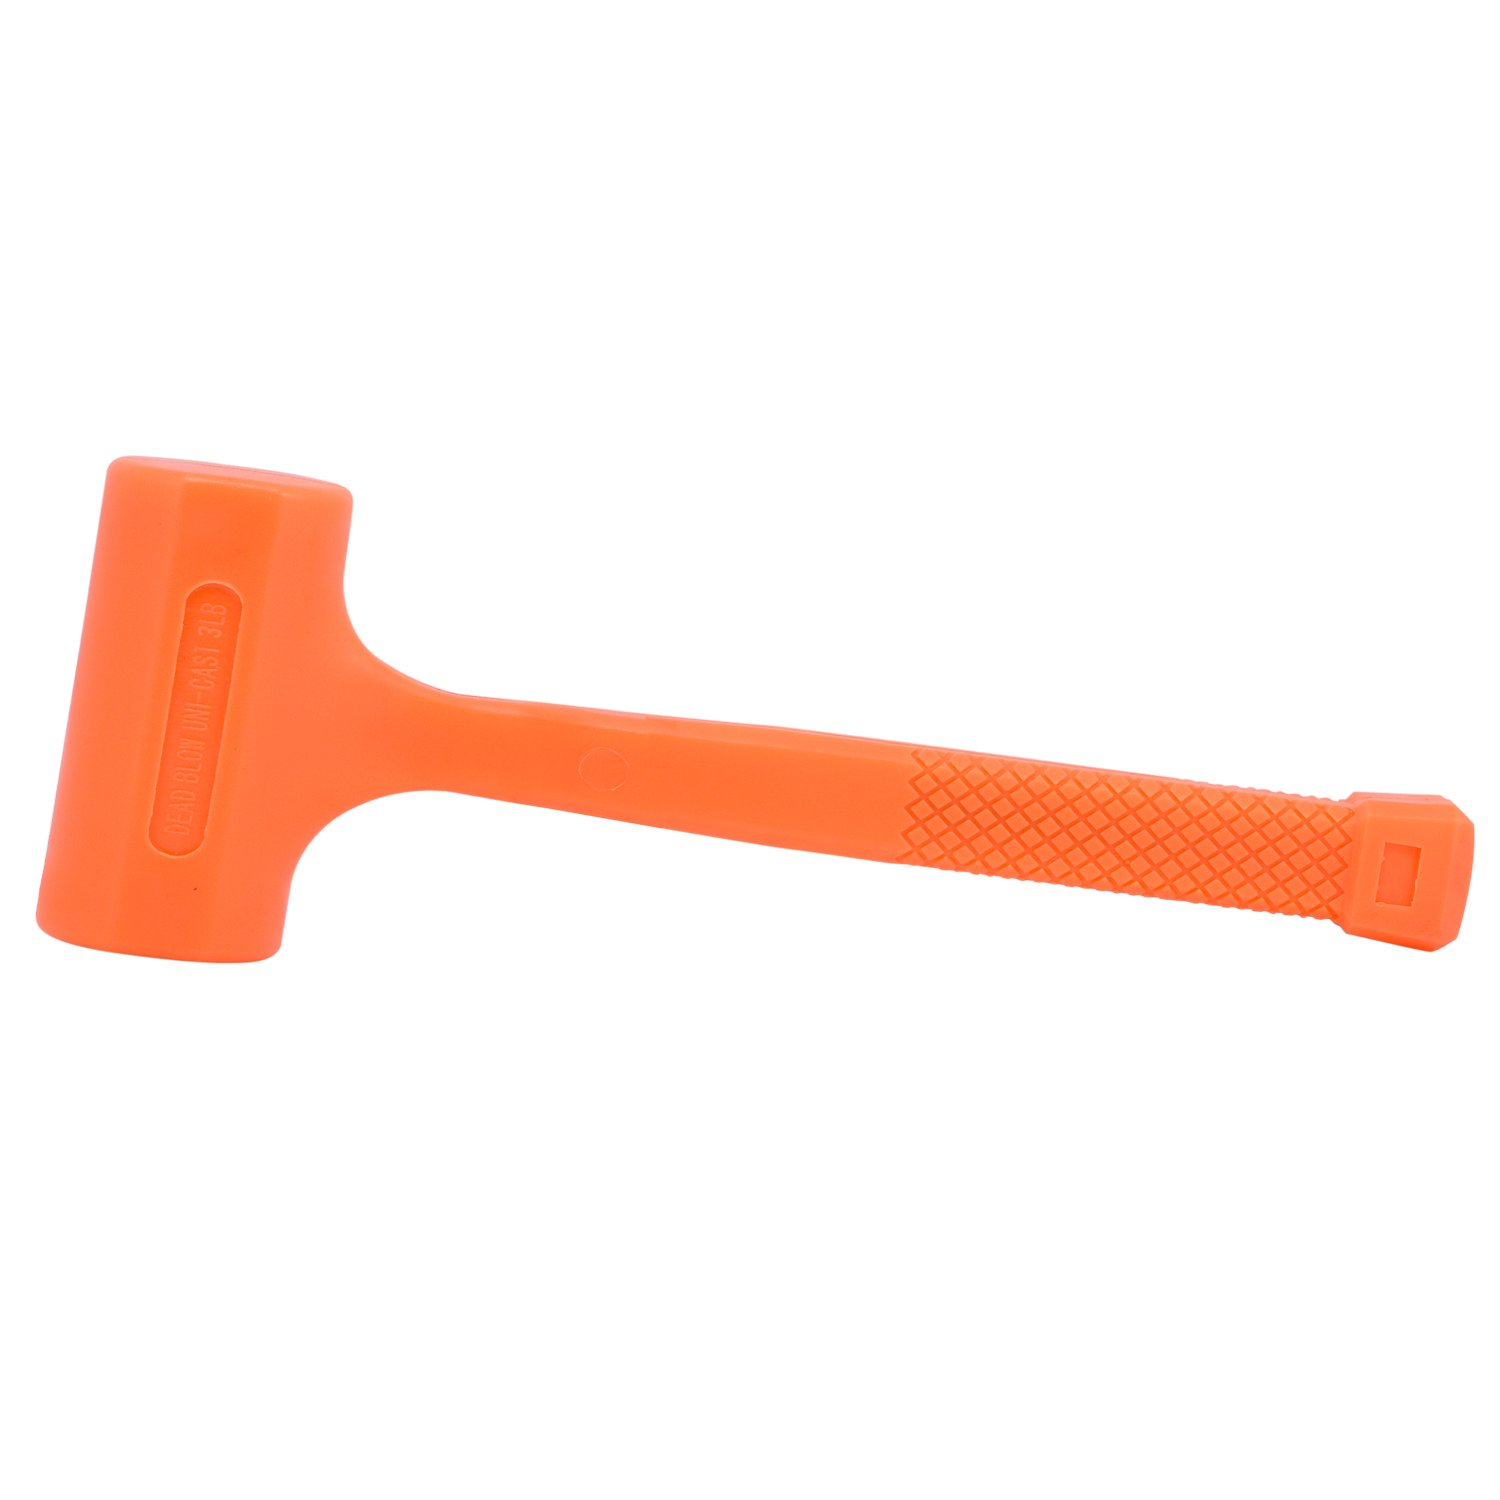 Neiko 02848A 3 LB Dead Blow Hammer, Neon Orange | Unibody Molded | Checkered Grip | Spark and Rebound Resistant by Neiko (Image #1)